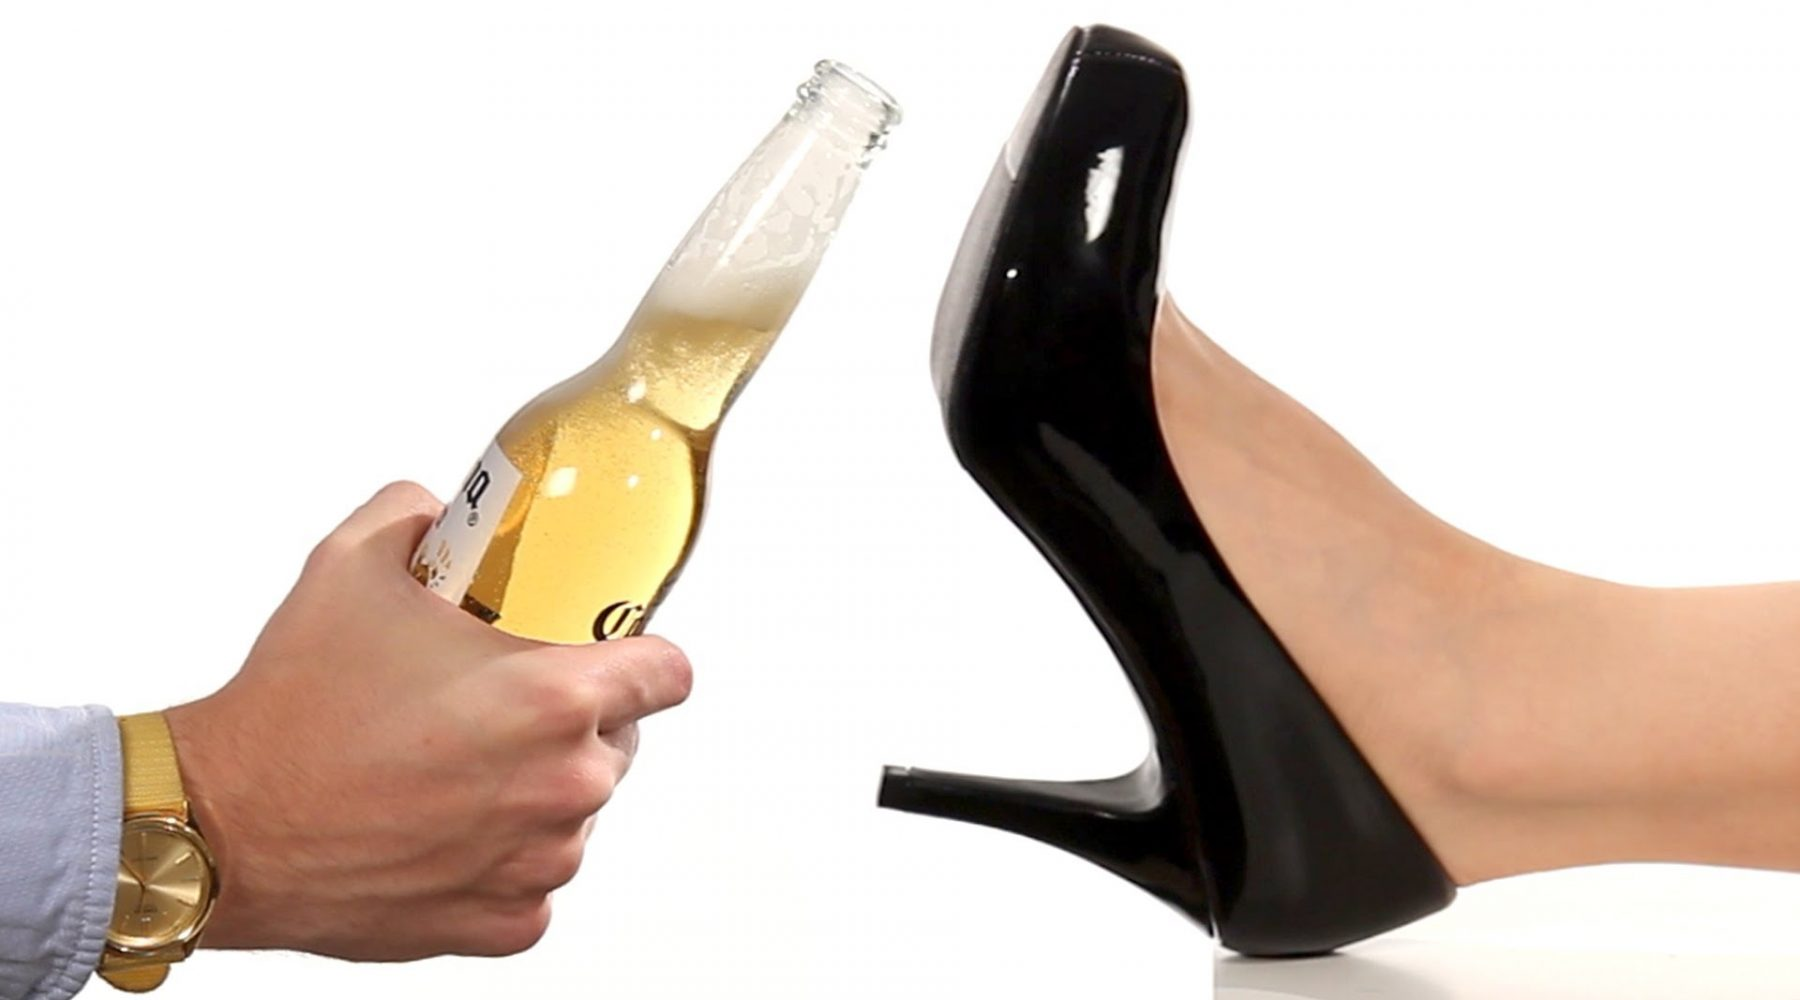 VIDEO: 21 Cool Ways to Open a Beer Bottle